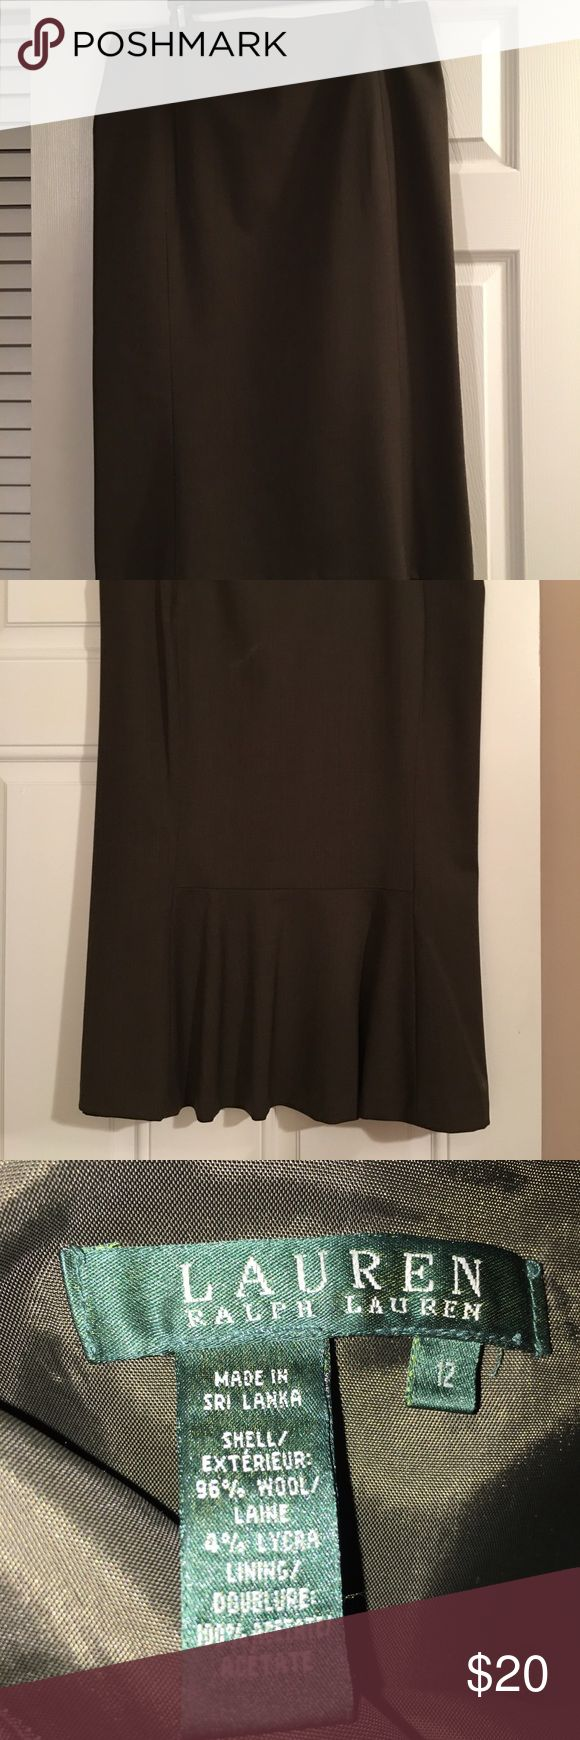 Ralph Lauren Olive Green Vintage Skirt Notice this vintage style skirt which is 29 inches long with great detail on the back. The exterior is 96% wool and 4% Lycra.  The lining is acetate.  Stylish and classy. Ralph Lauren Skirts Pencil